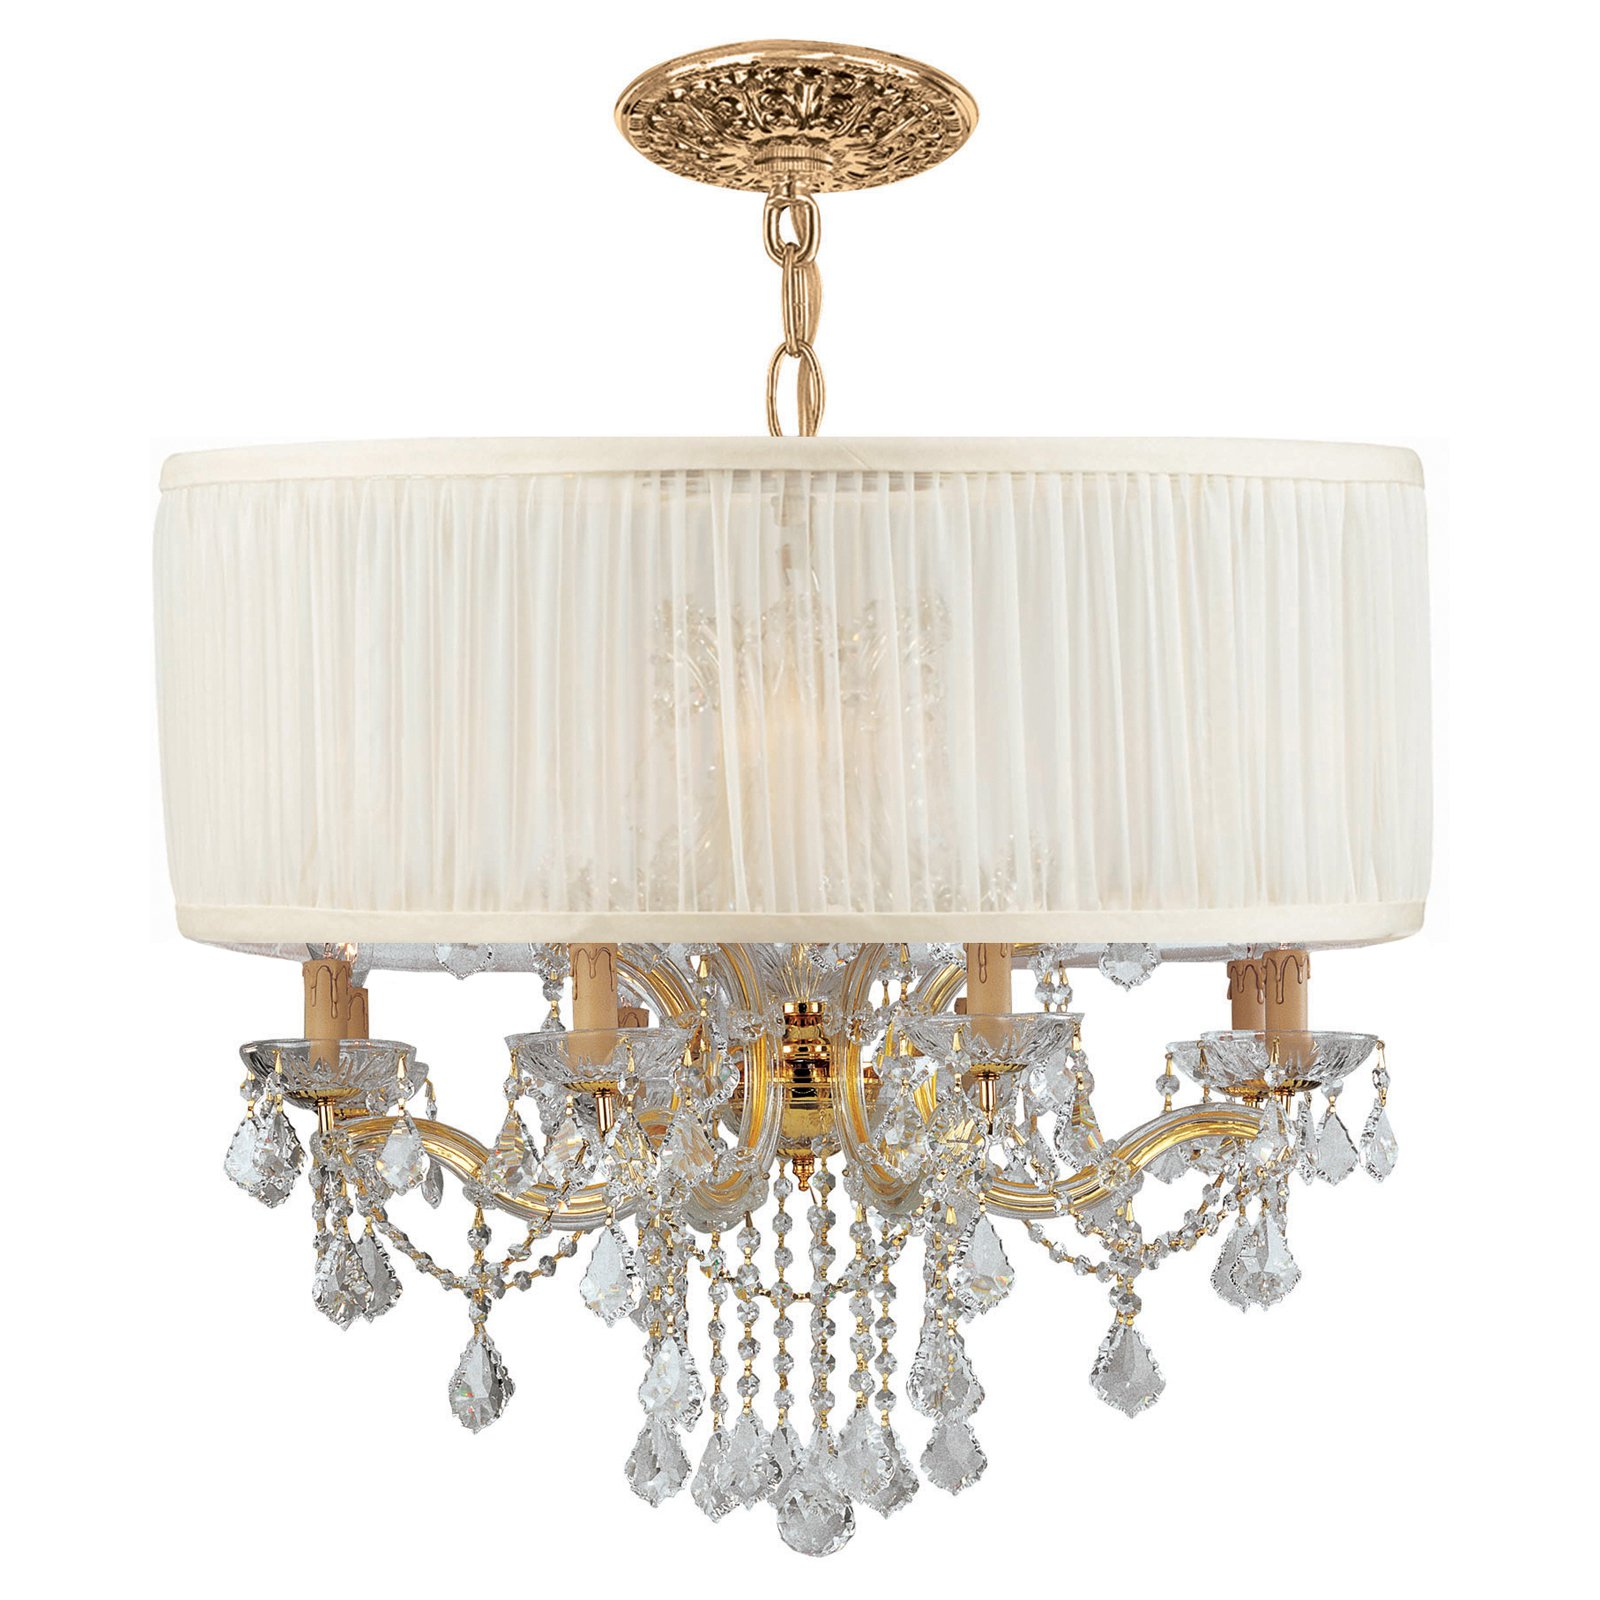 Crystorama Brentwood 4489 Chandelier